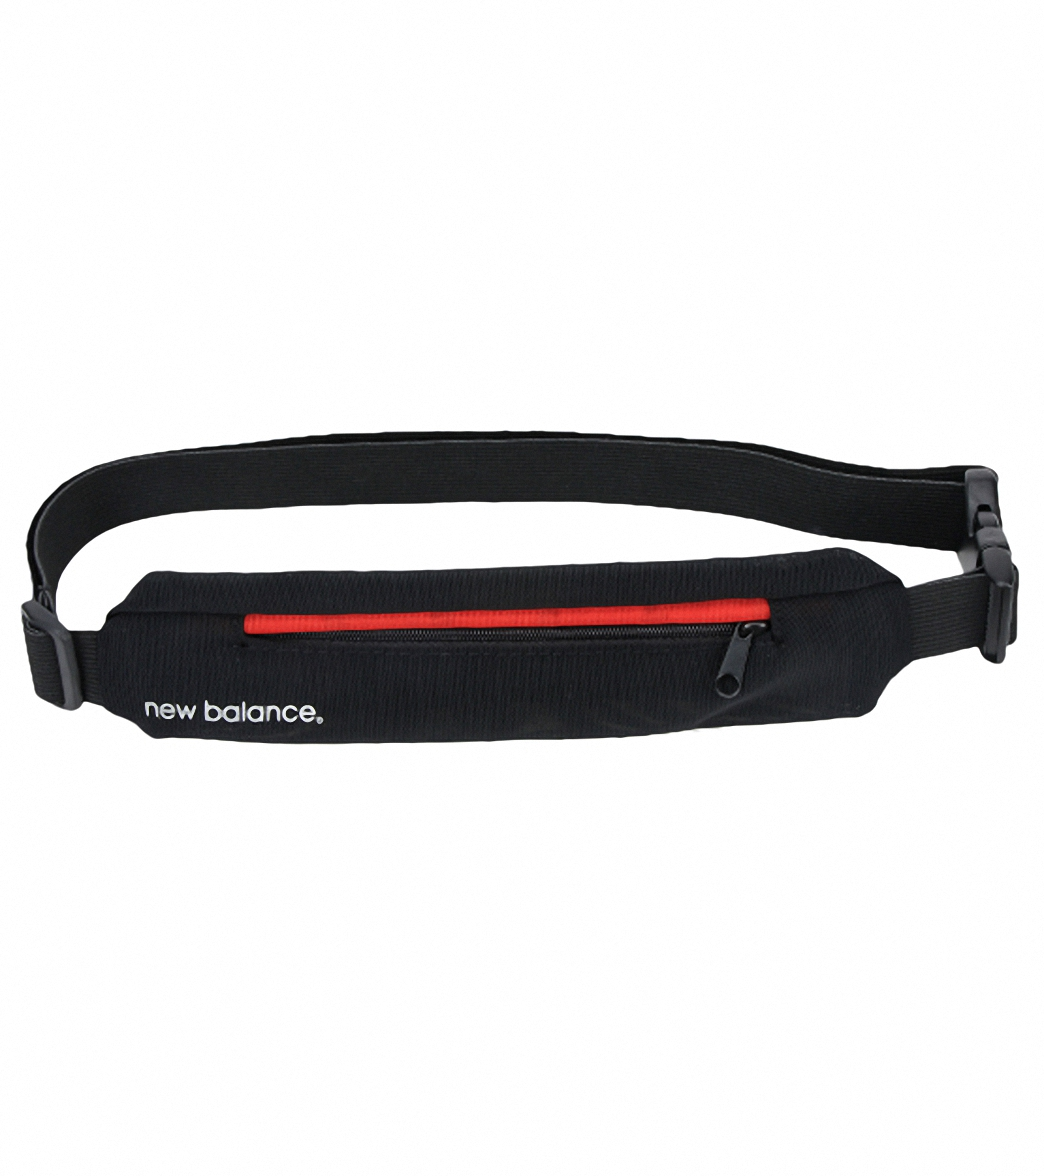 new balance running belt